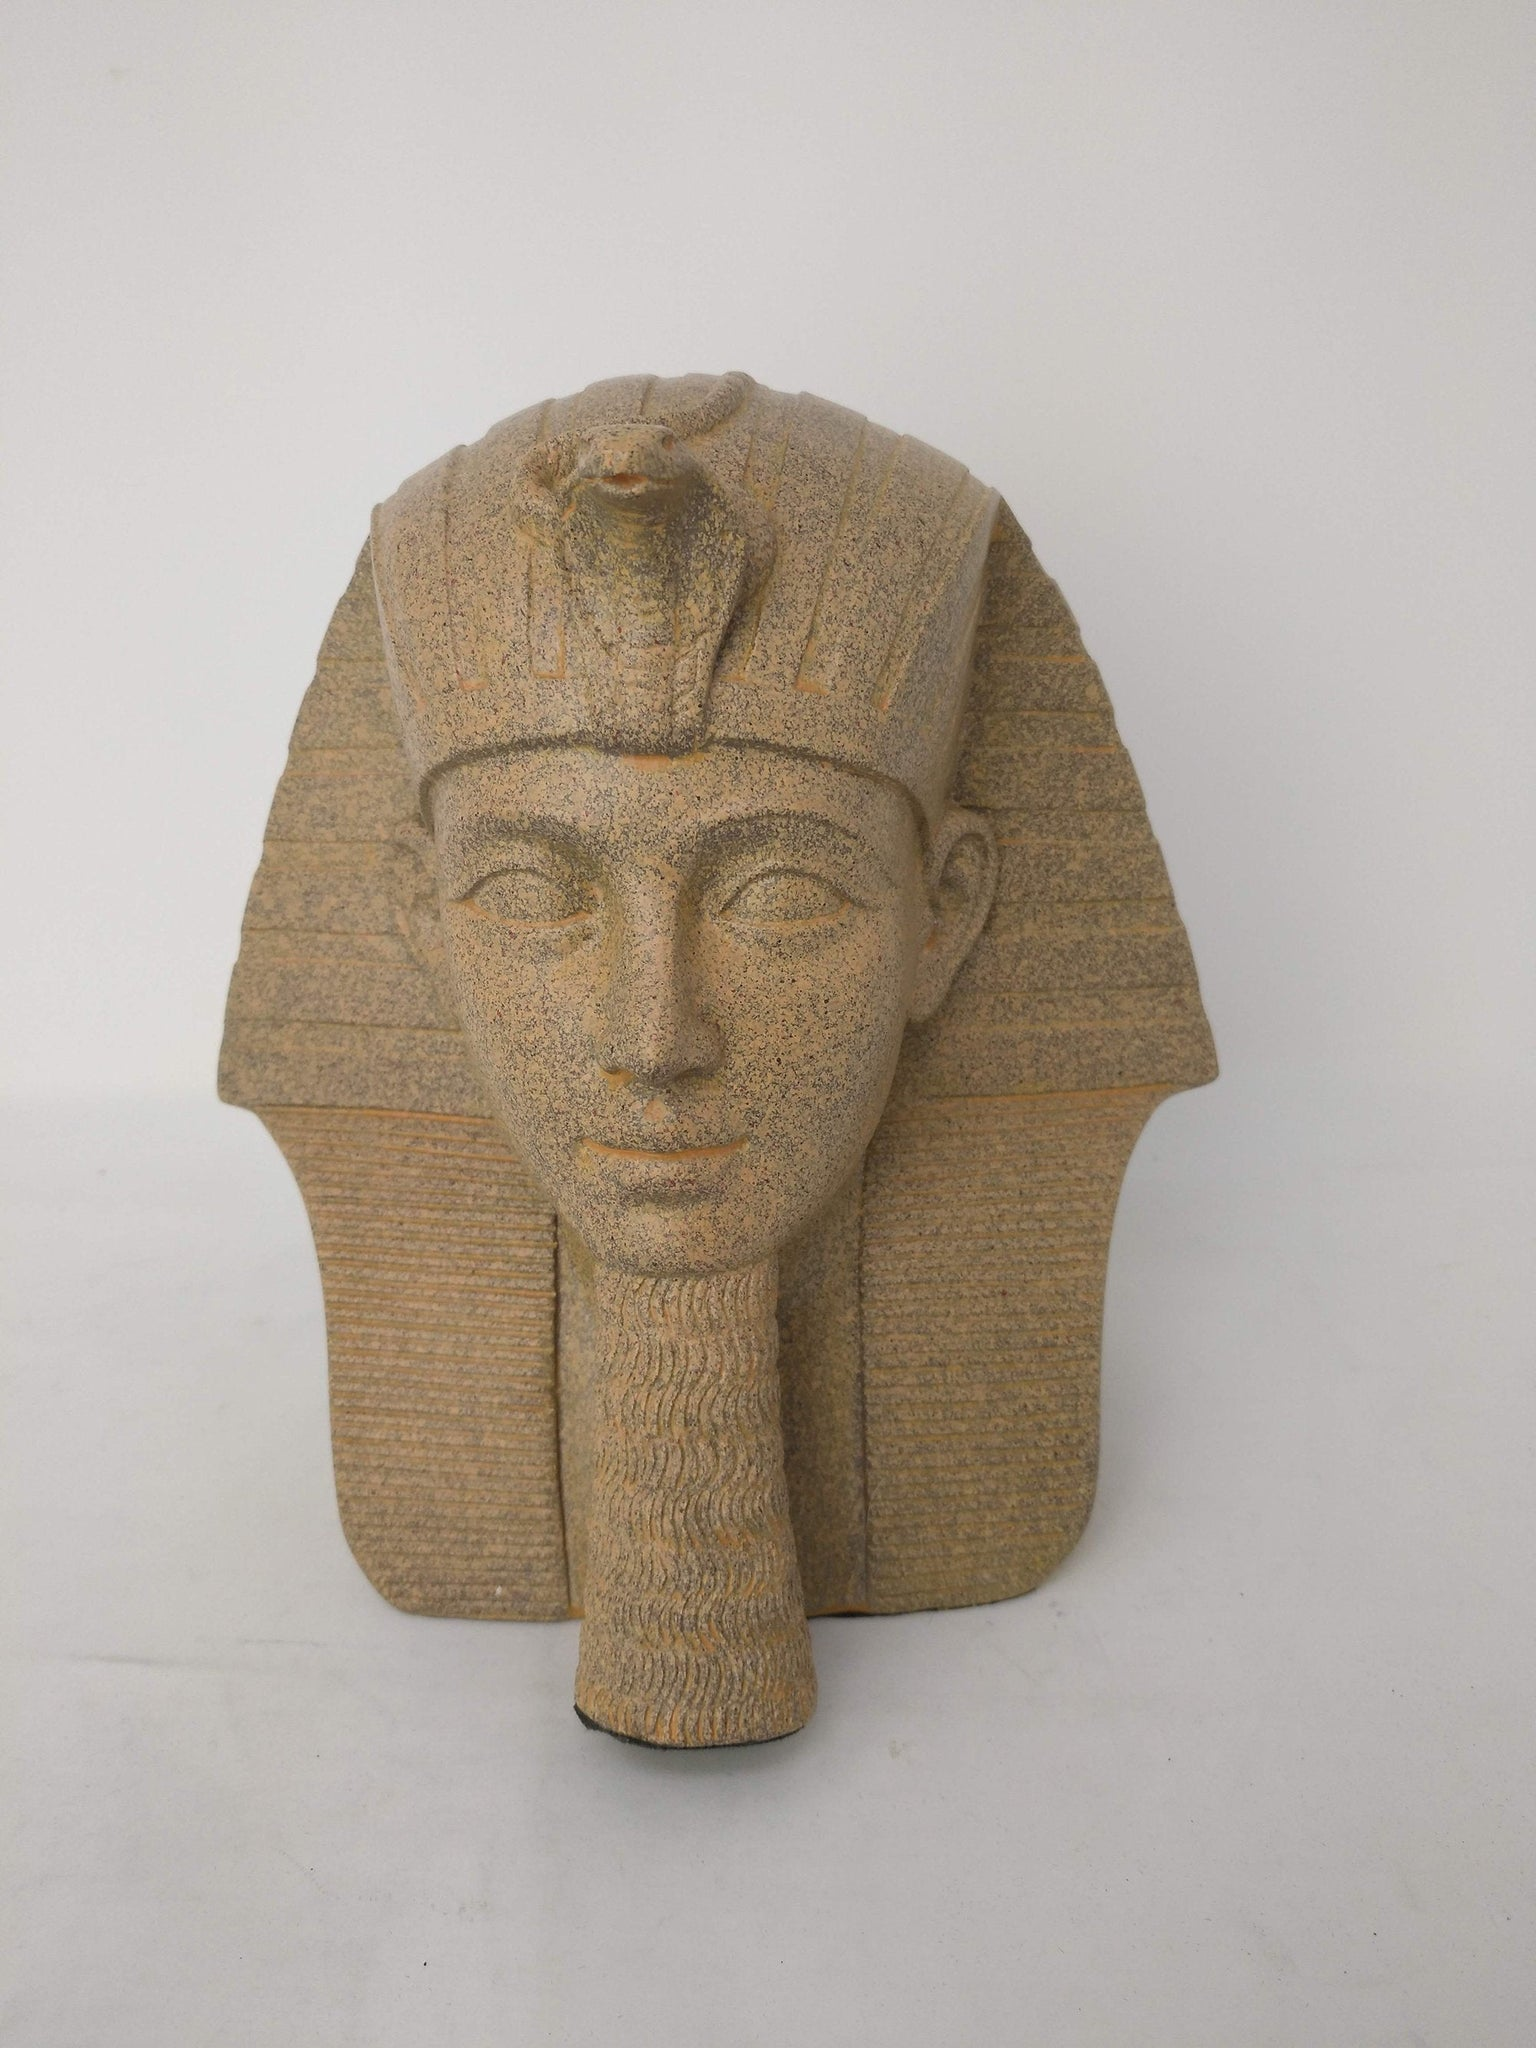 Medium Thutmose III Replica Bust - Museum Replica of Ancient Egyptian King Thutmose III  - 7.5 inches / 19 cm tall!